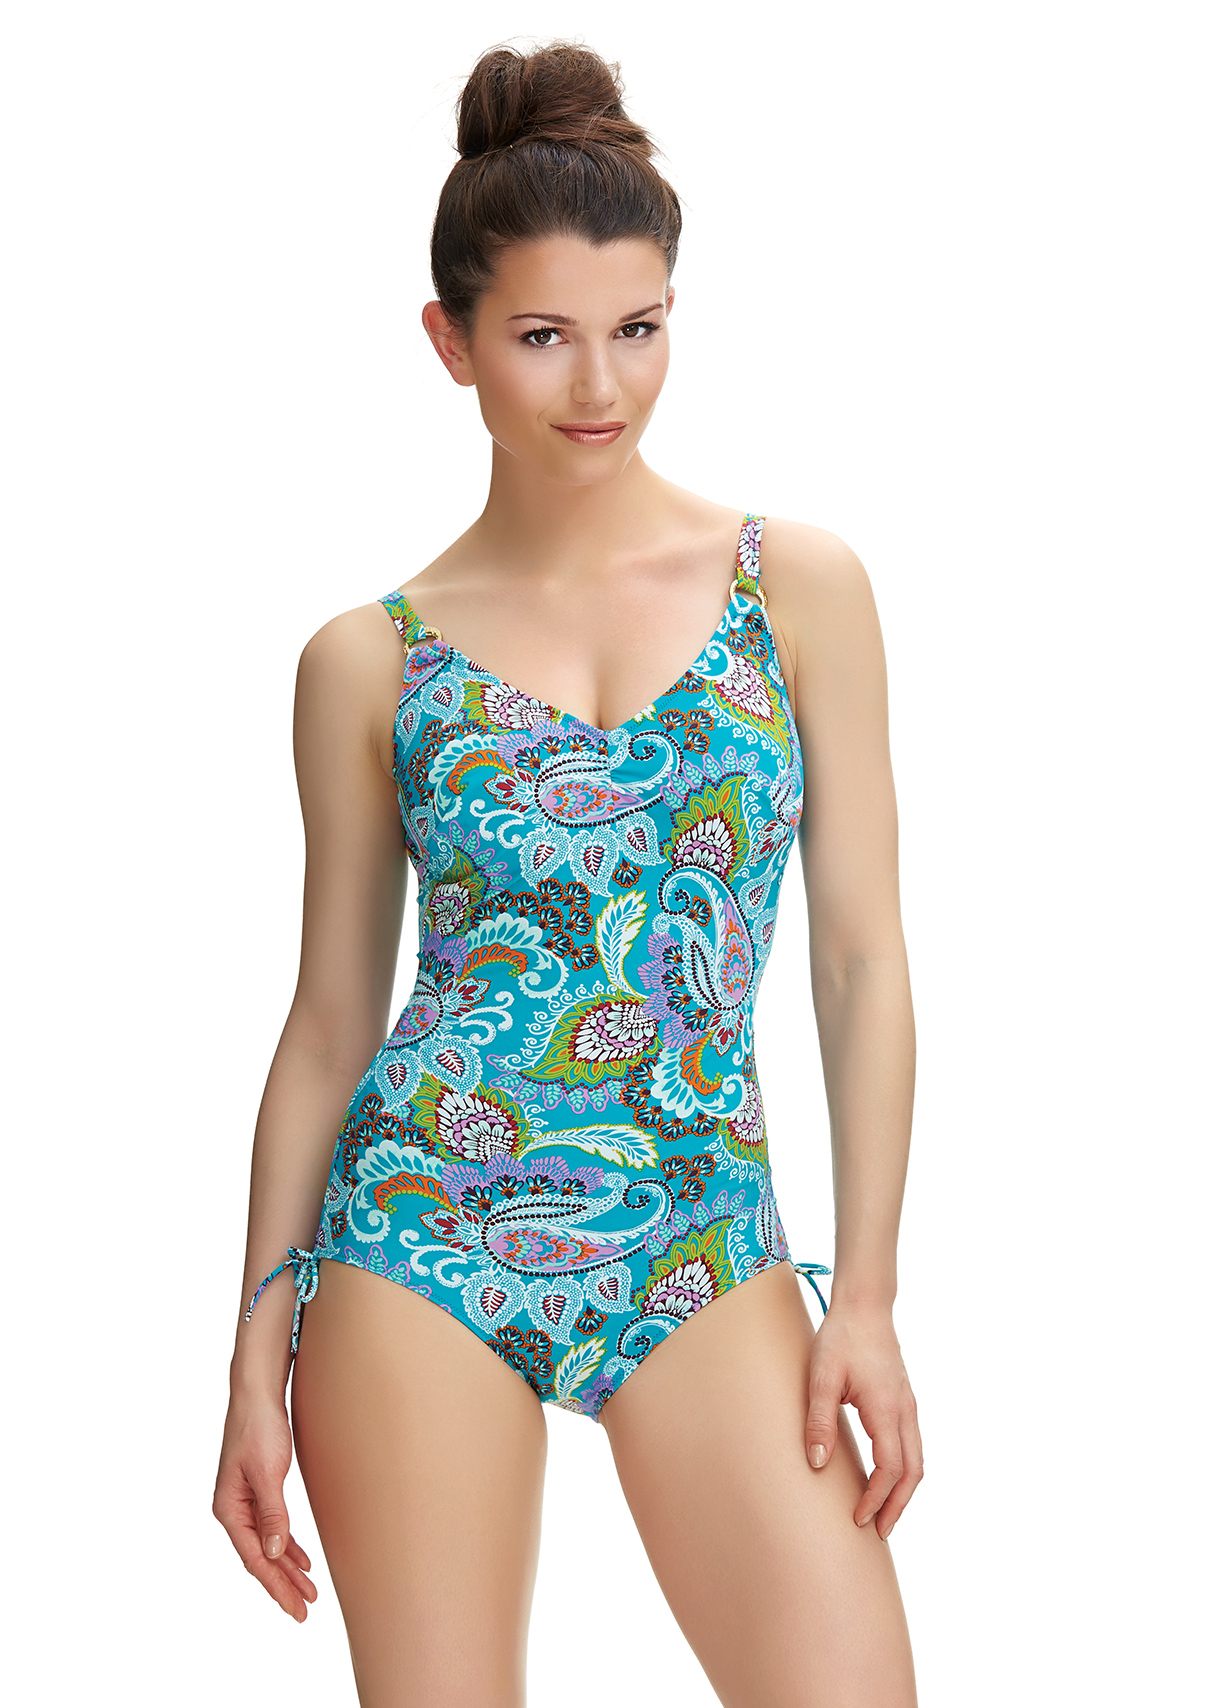 Fantasie Viana swimsuit